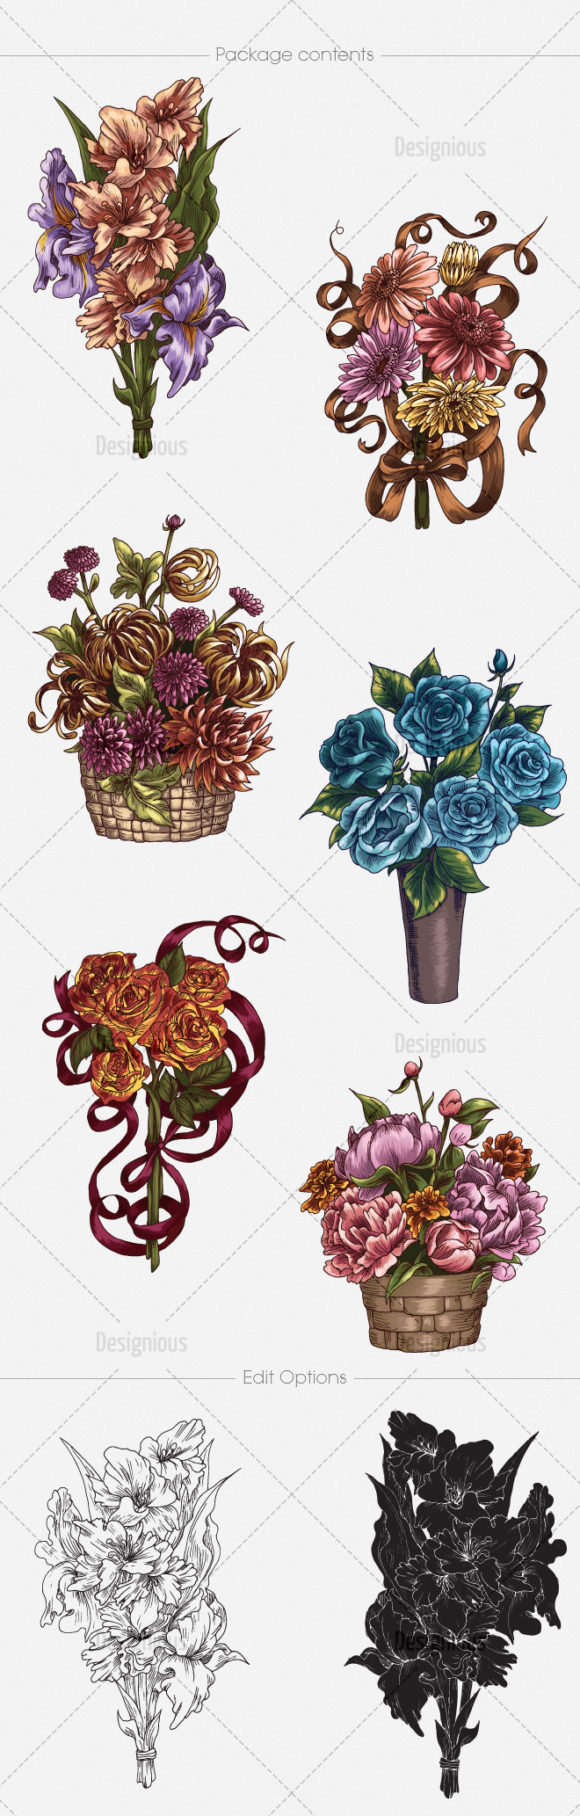 Floral Vector Pack 135 products designious vector floral bouquets 135 large